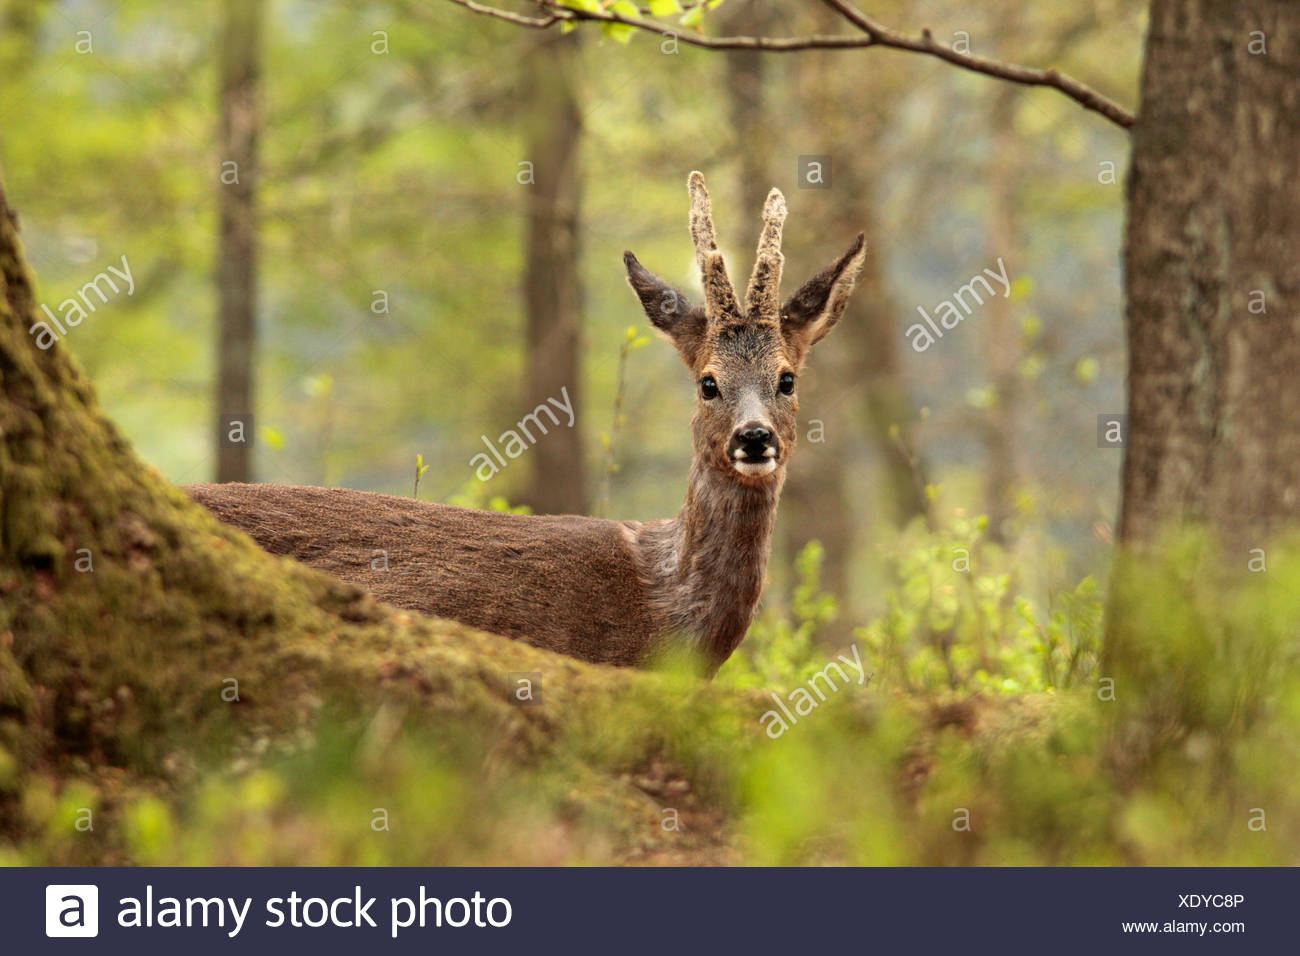 Roe Deer (Capreolus capreolus) buck in a forest in spring. Stock Photo